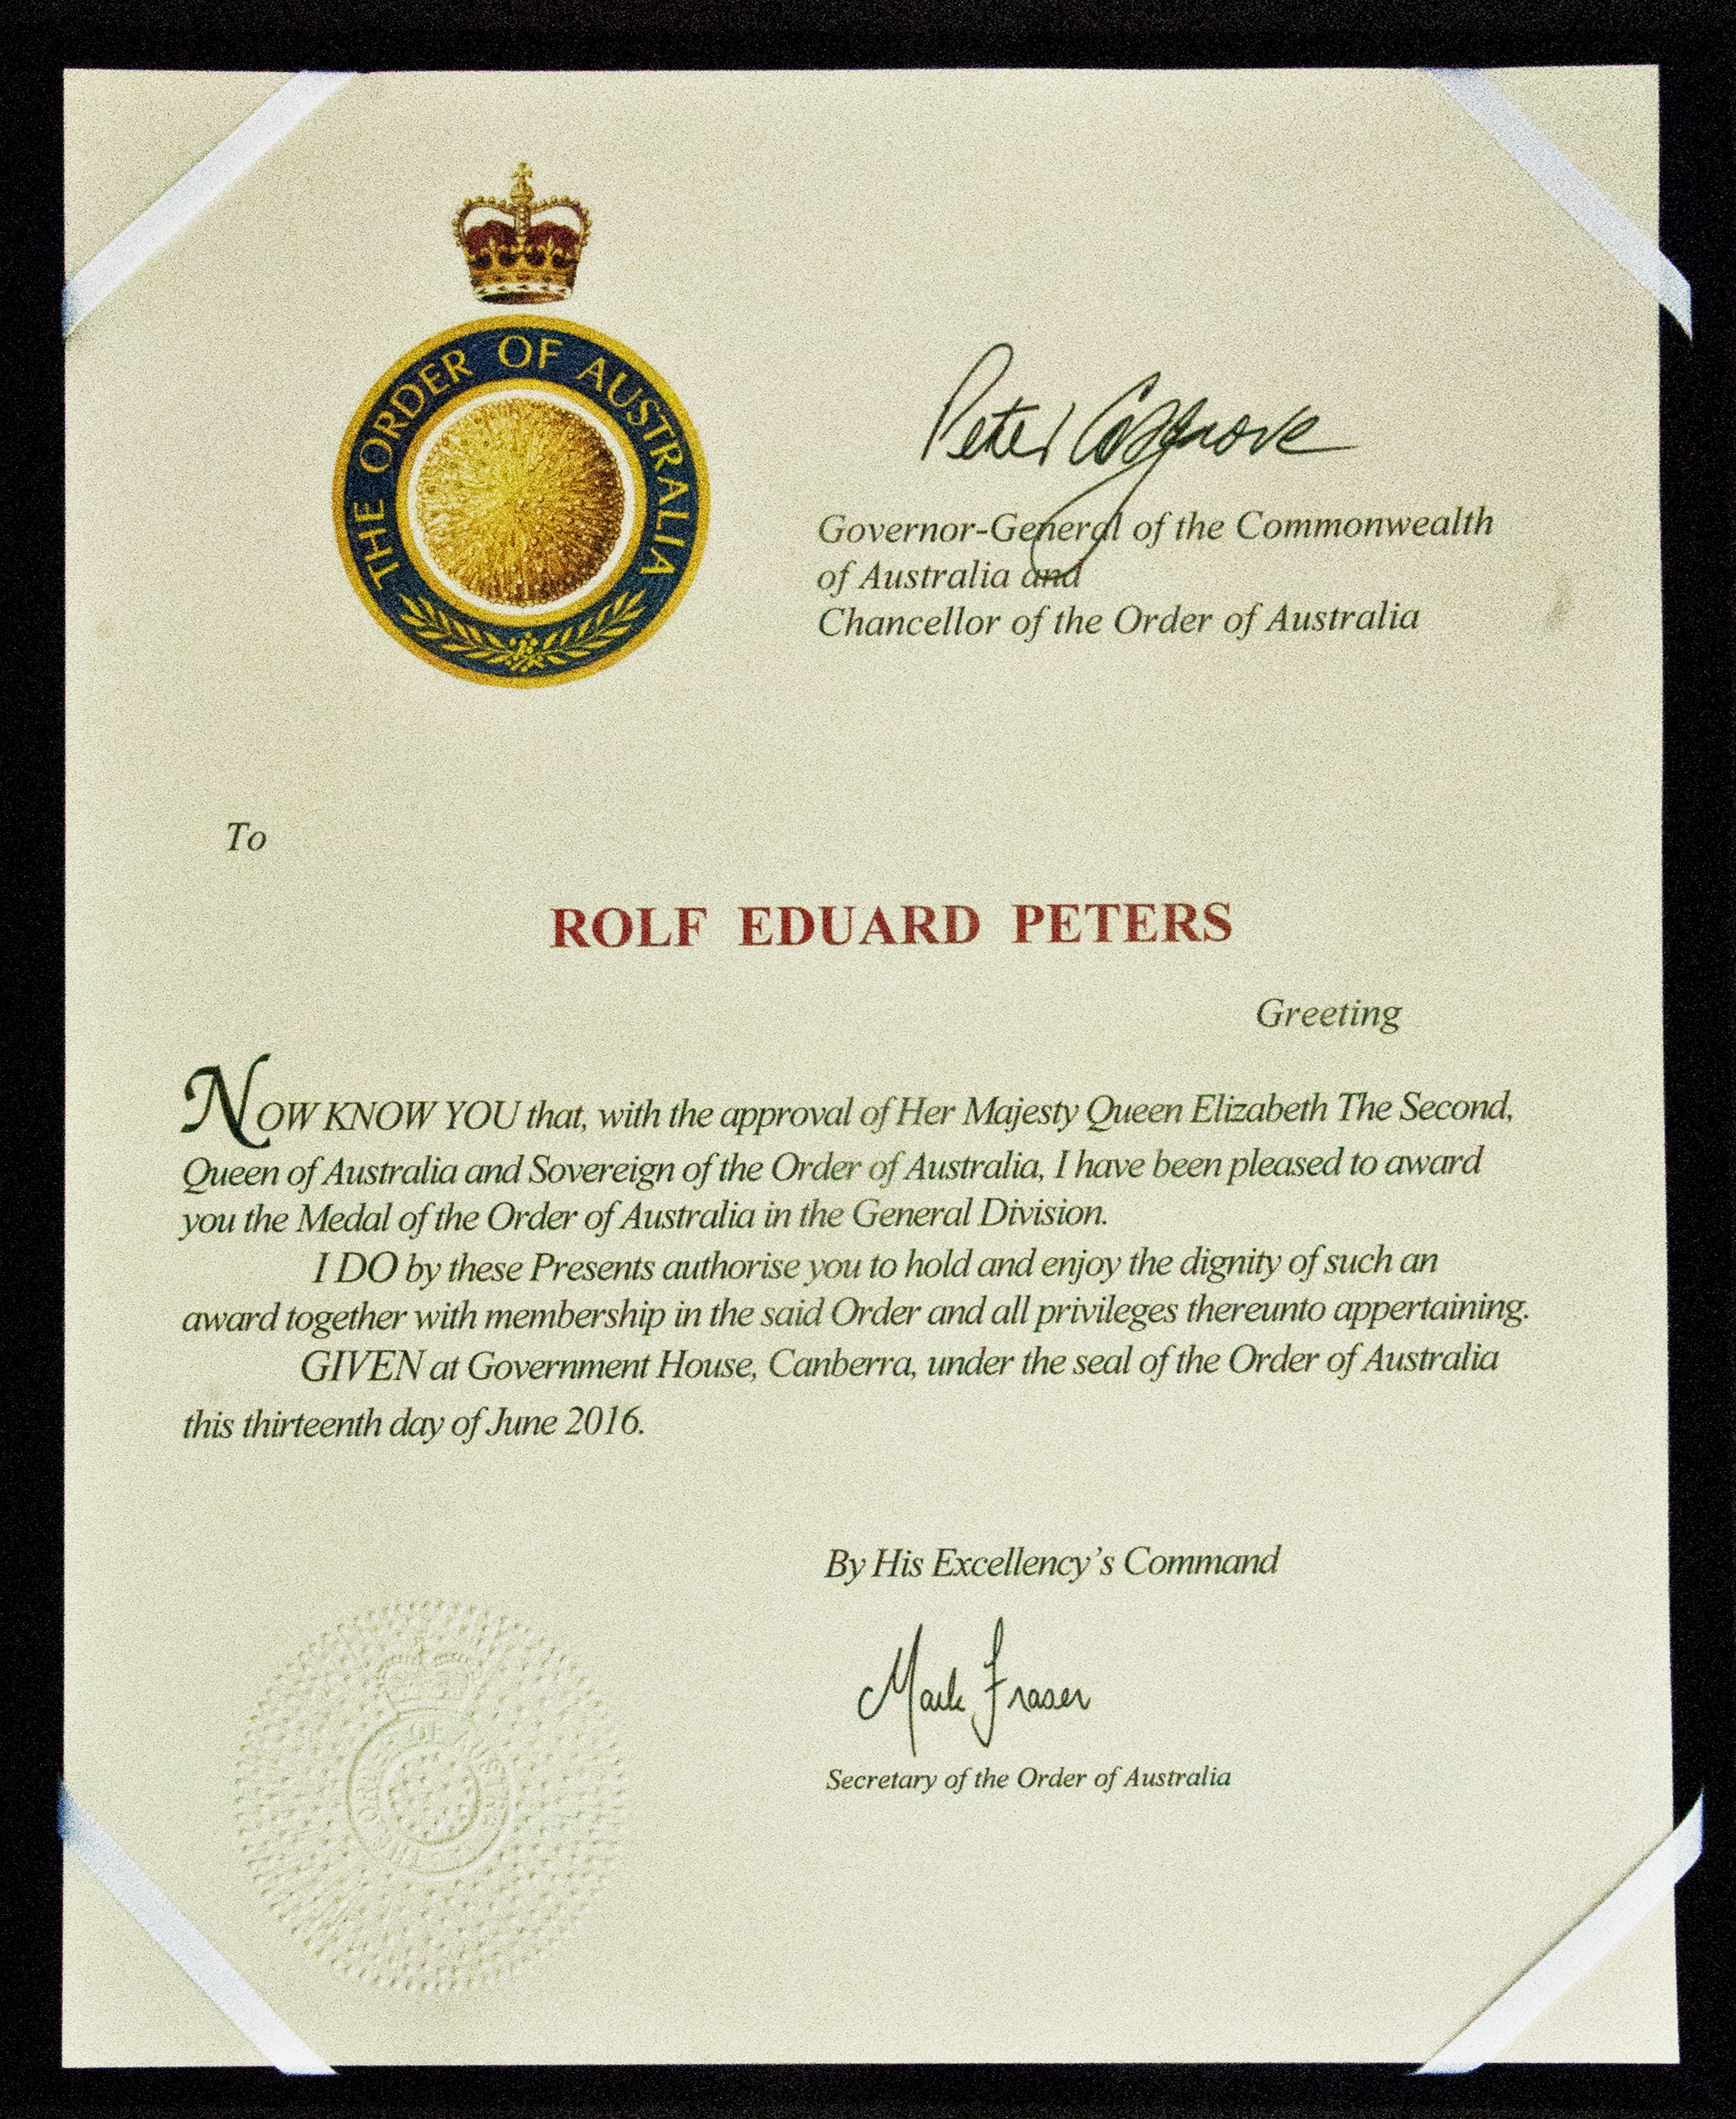 Award Letter from the Governor General of Australia